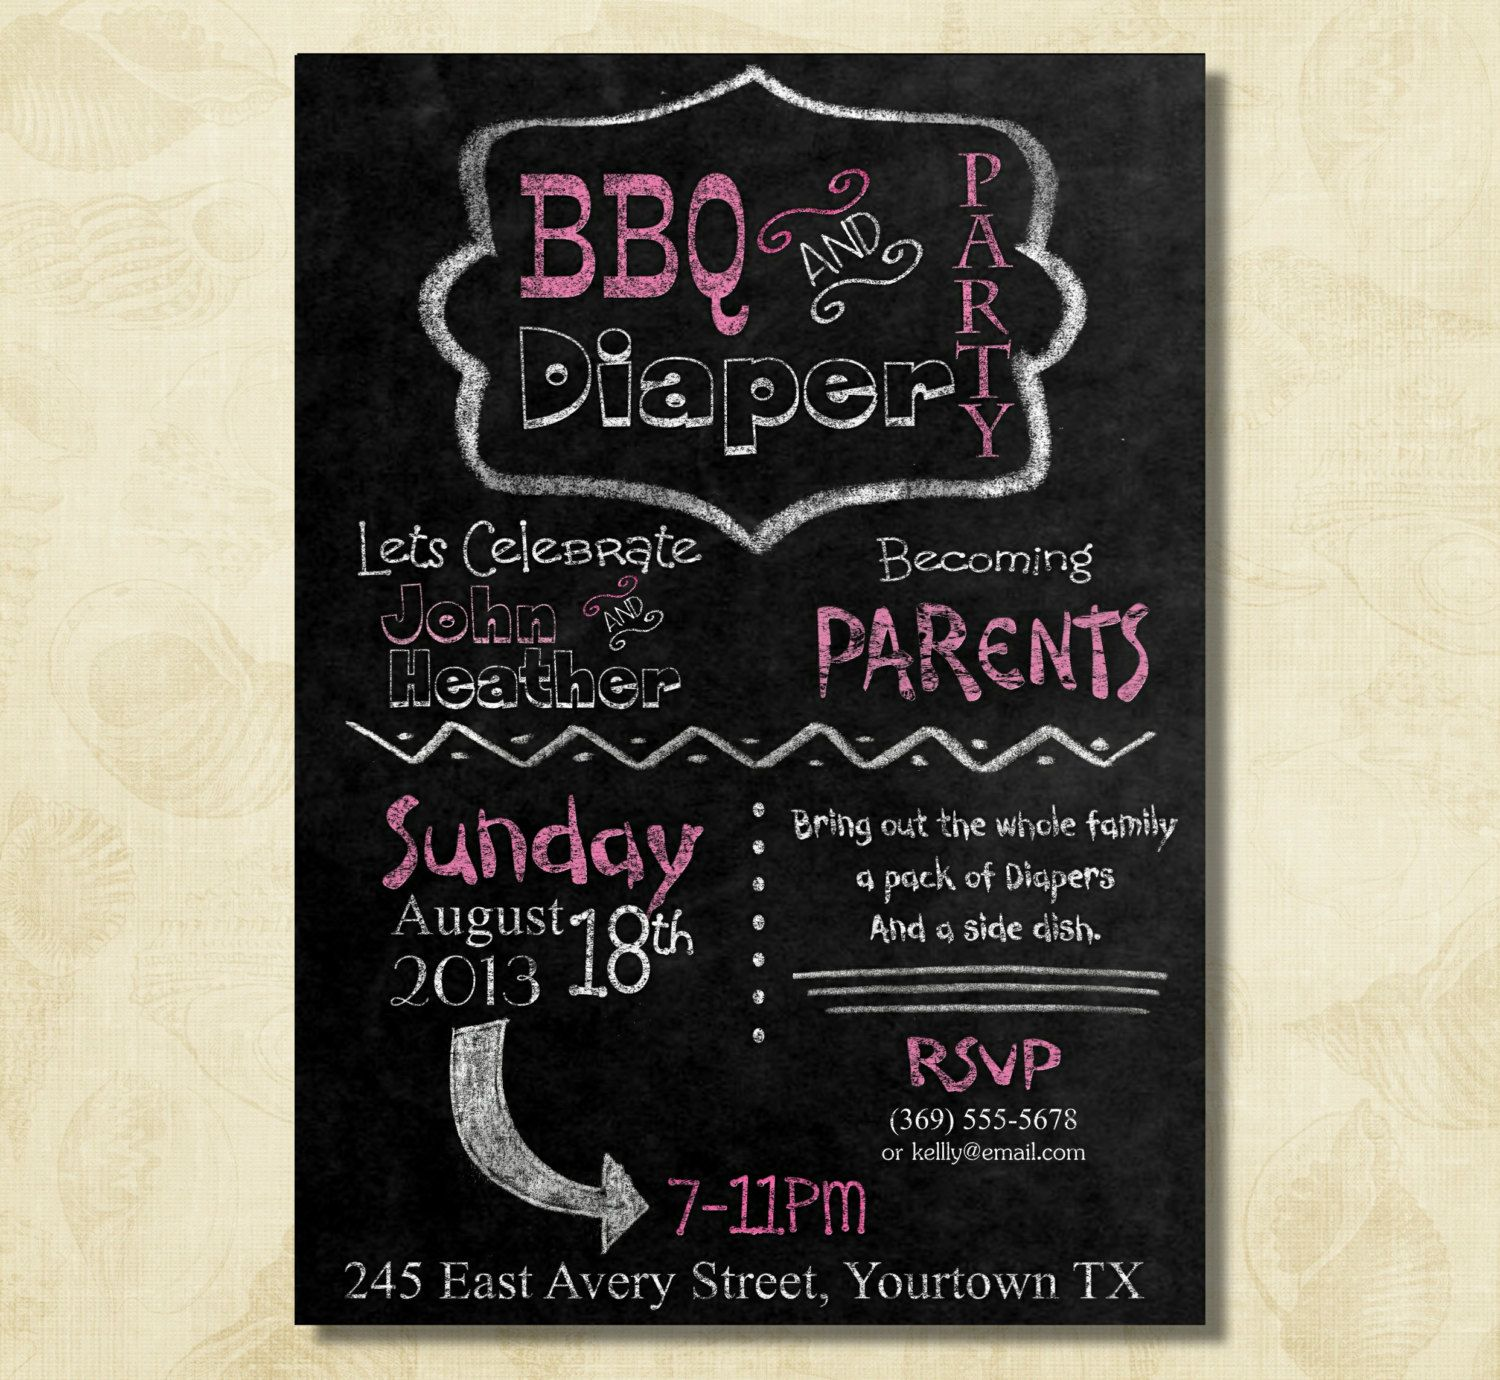 baby shower invitation wording for bringing diapers%0A BBQ and diaper man couple dad baby shower by WinterVallie on Etsy